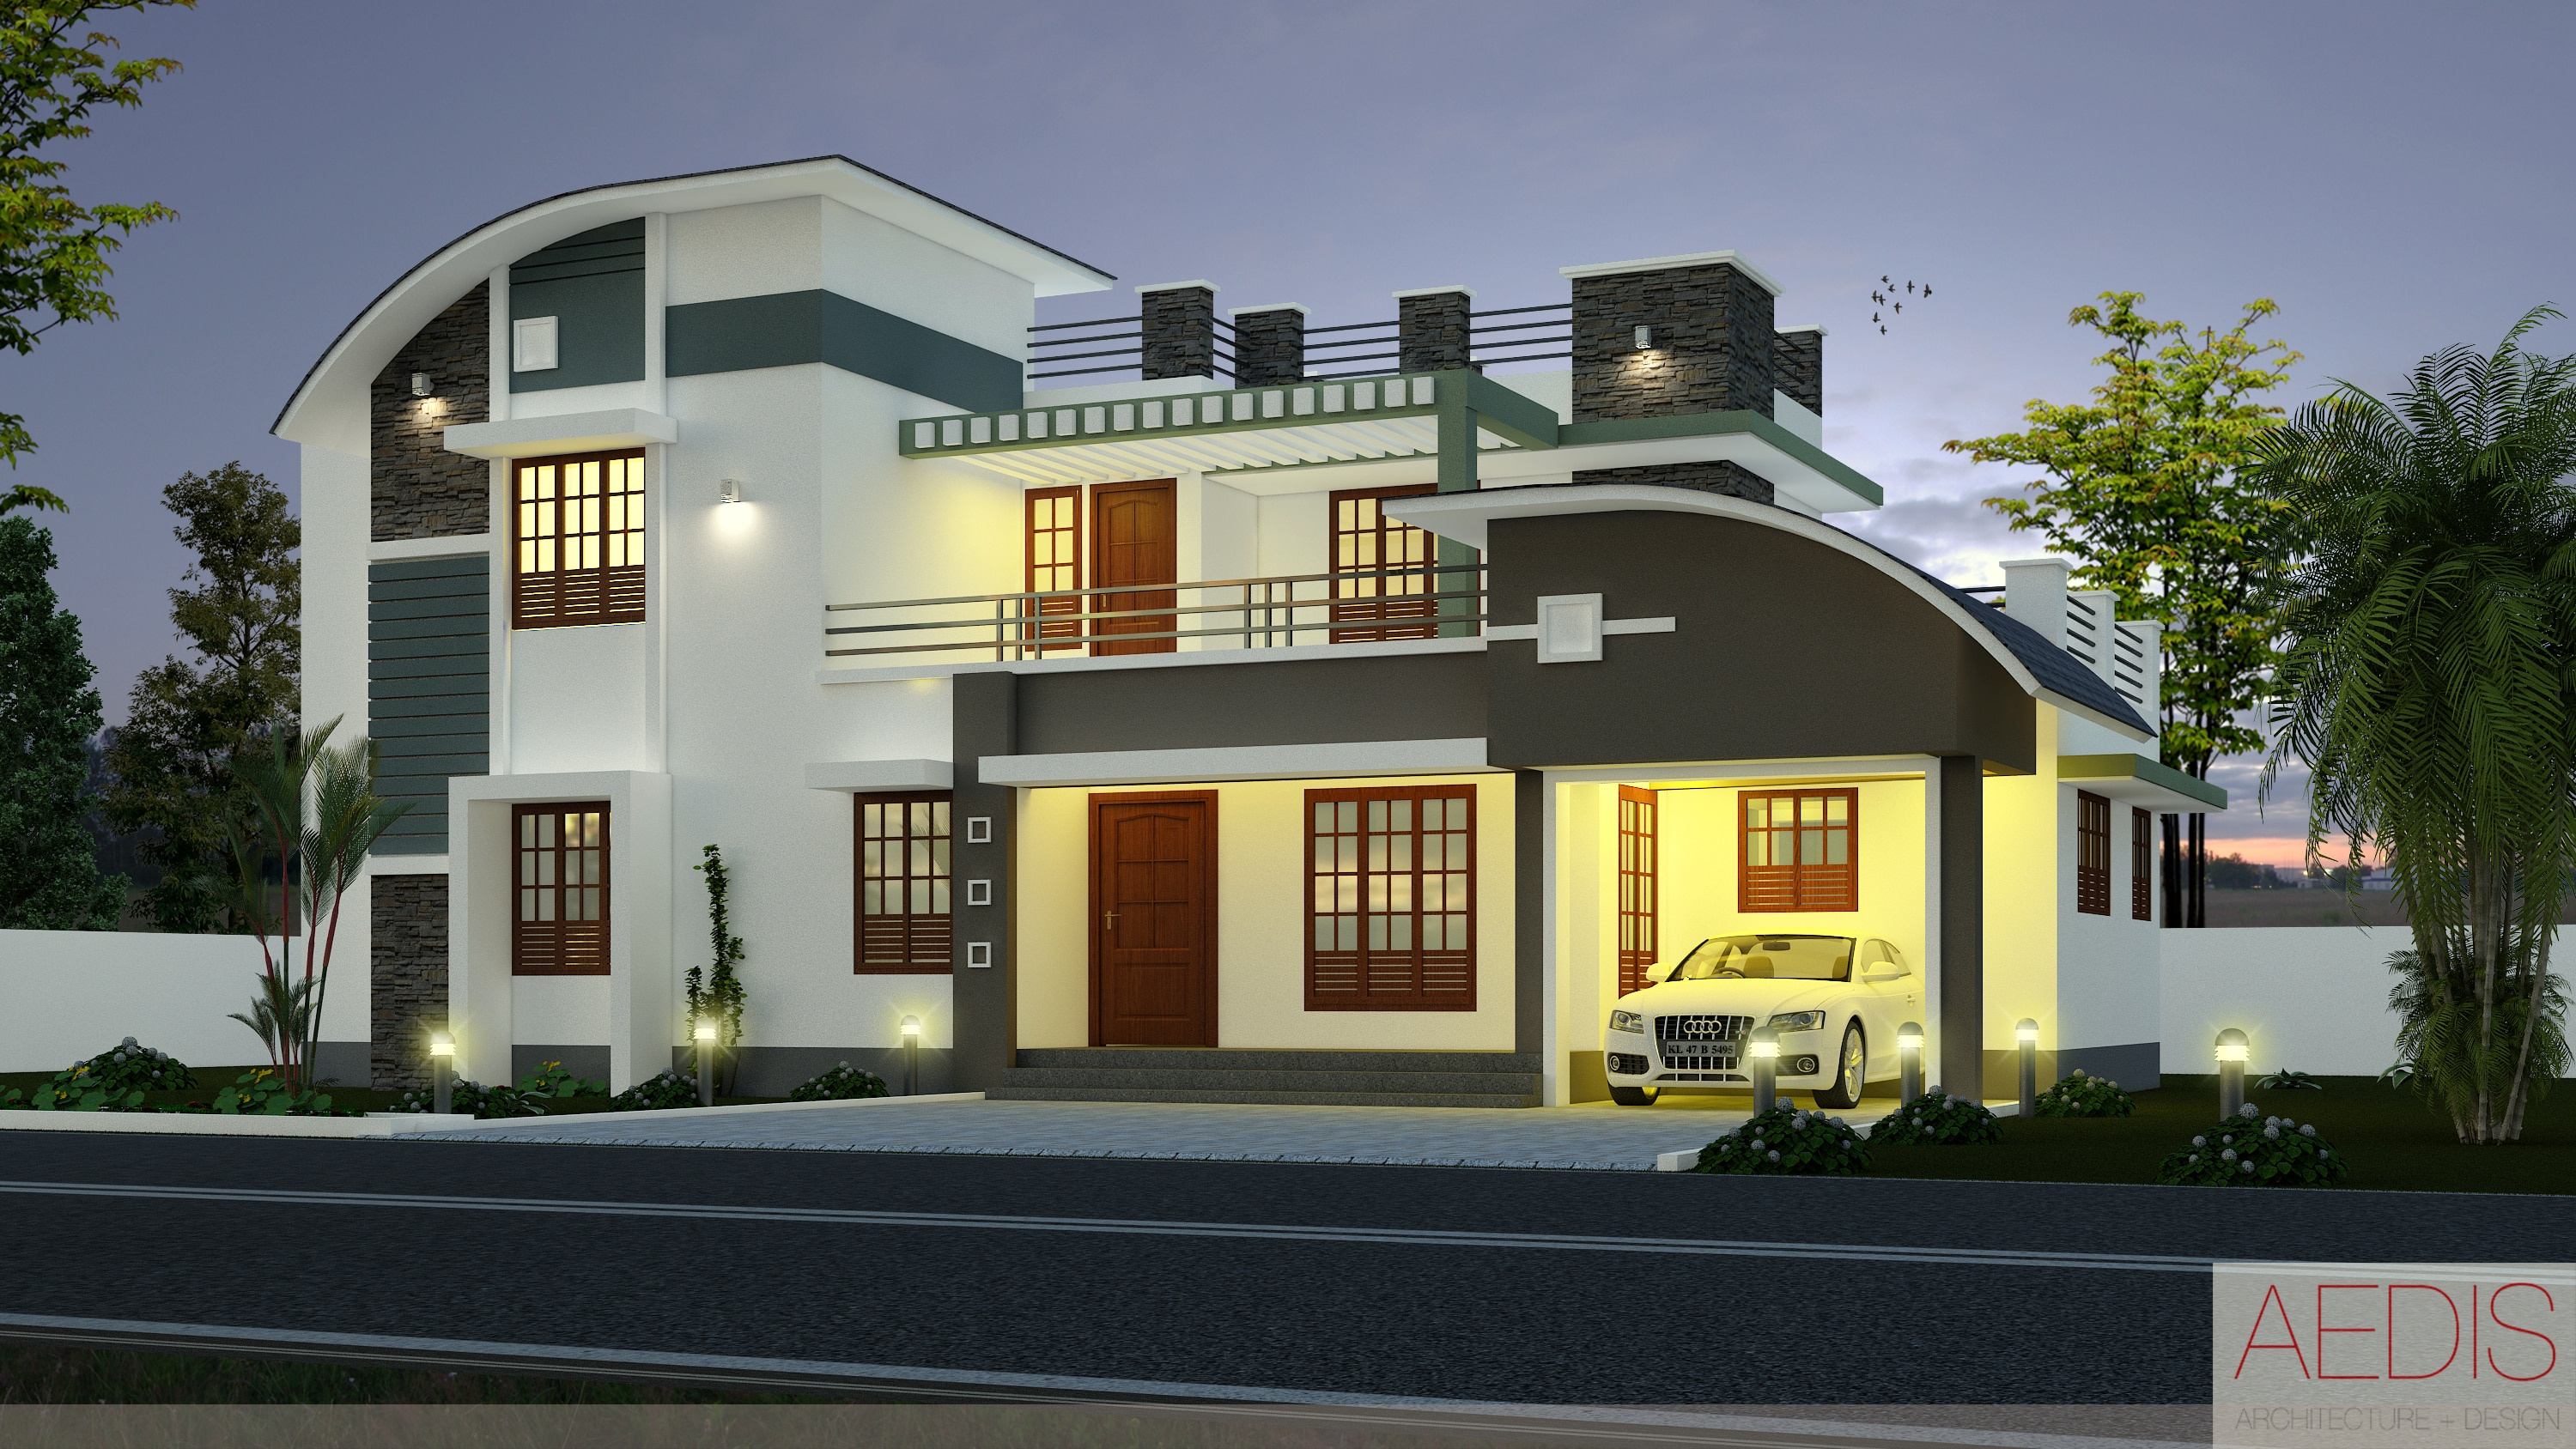 Newly modernized houses with kerala house designs kerala for Www kerala house designs com